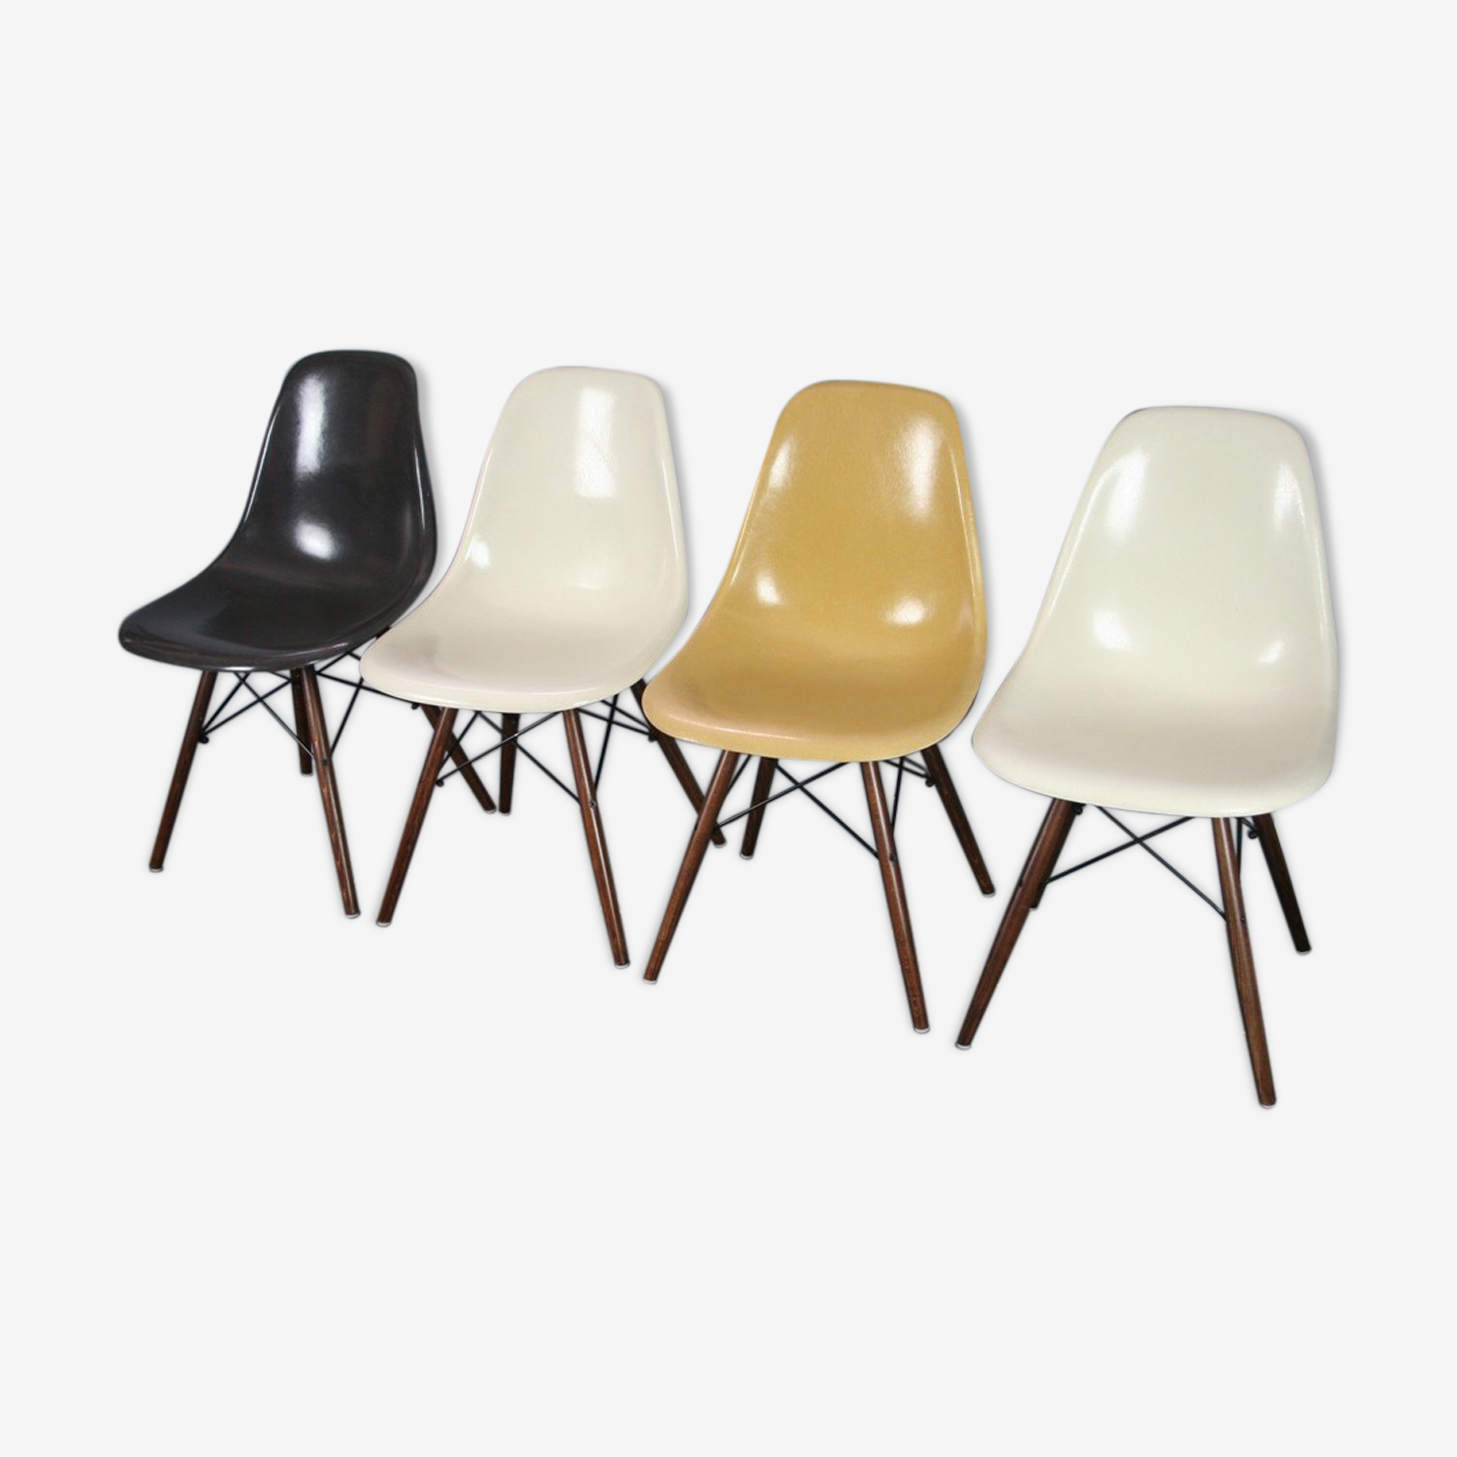 Set of 4 DSW Eames Herman Miller chairs